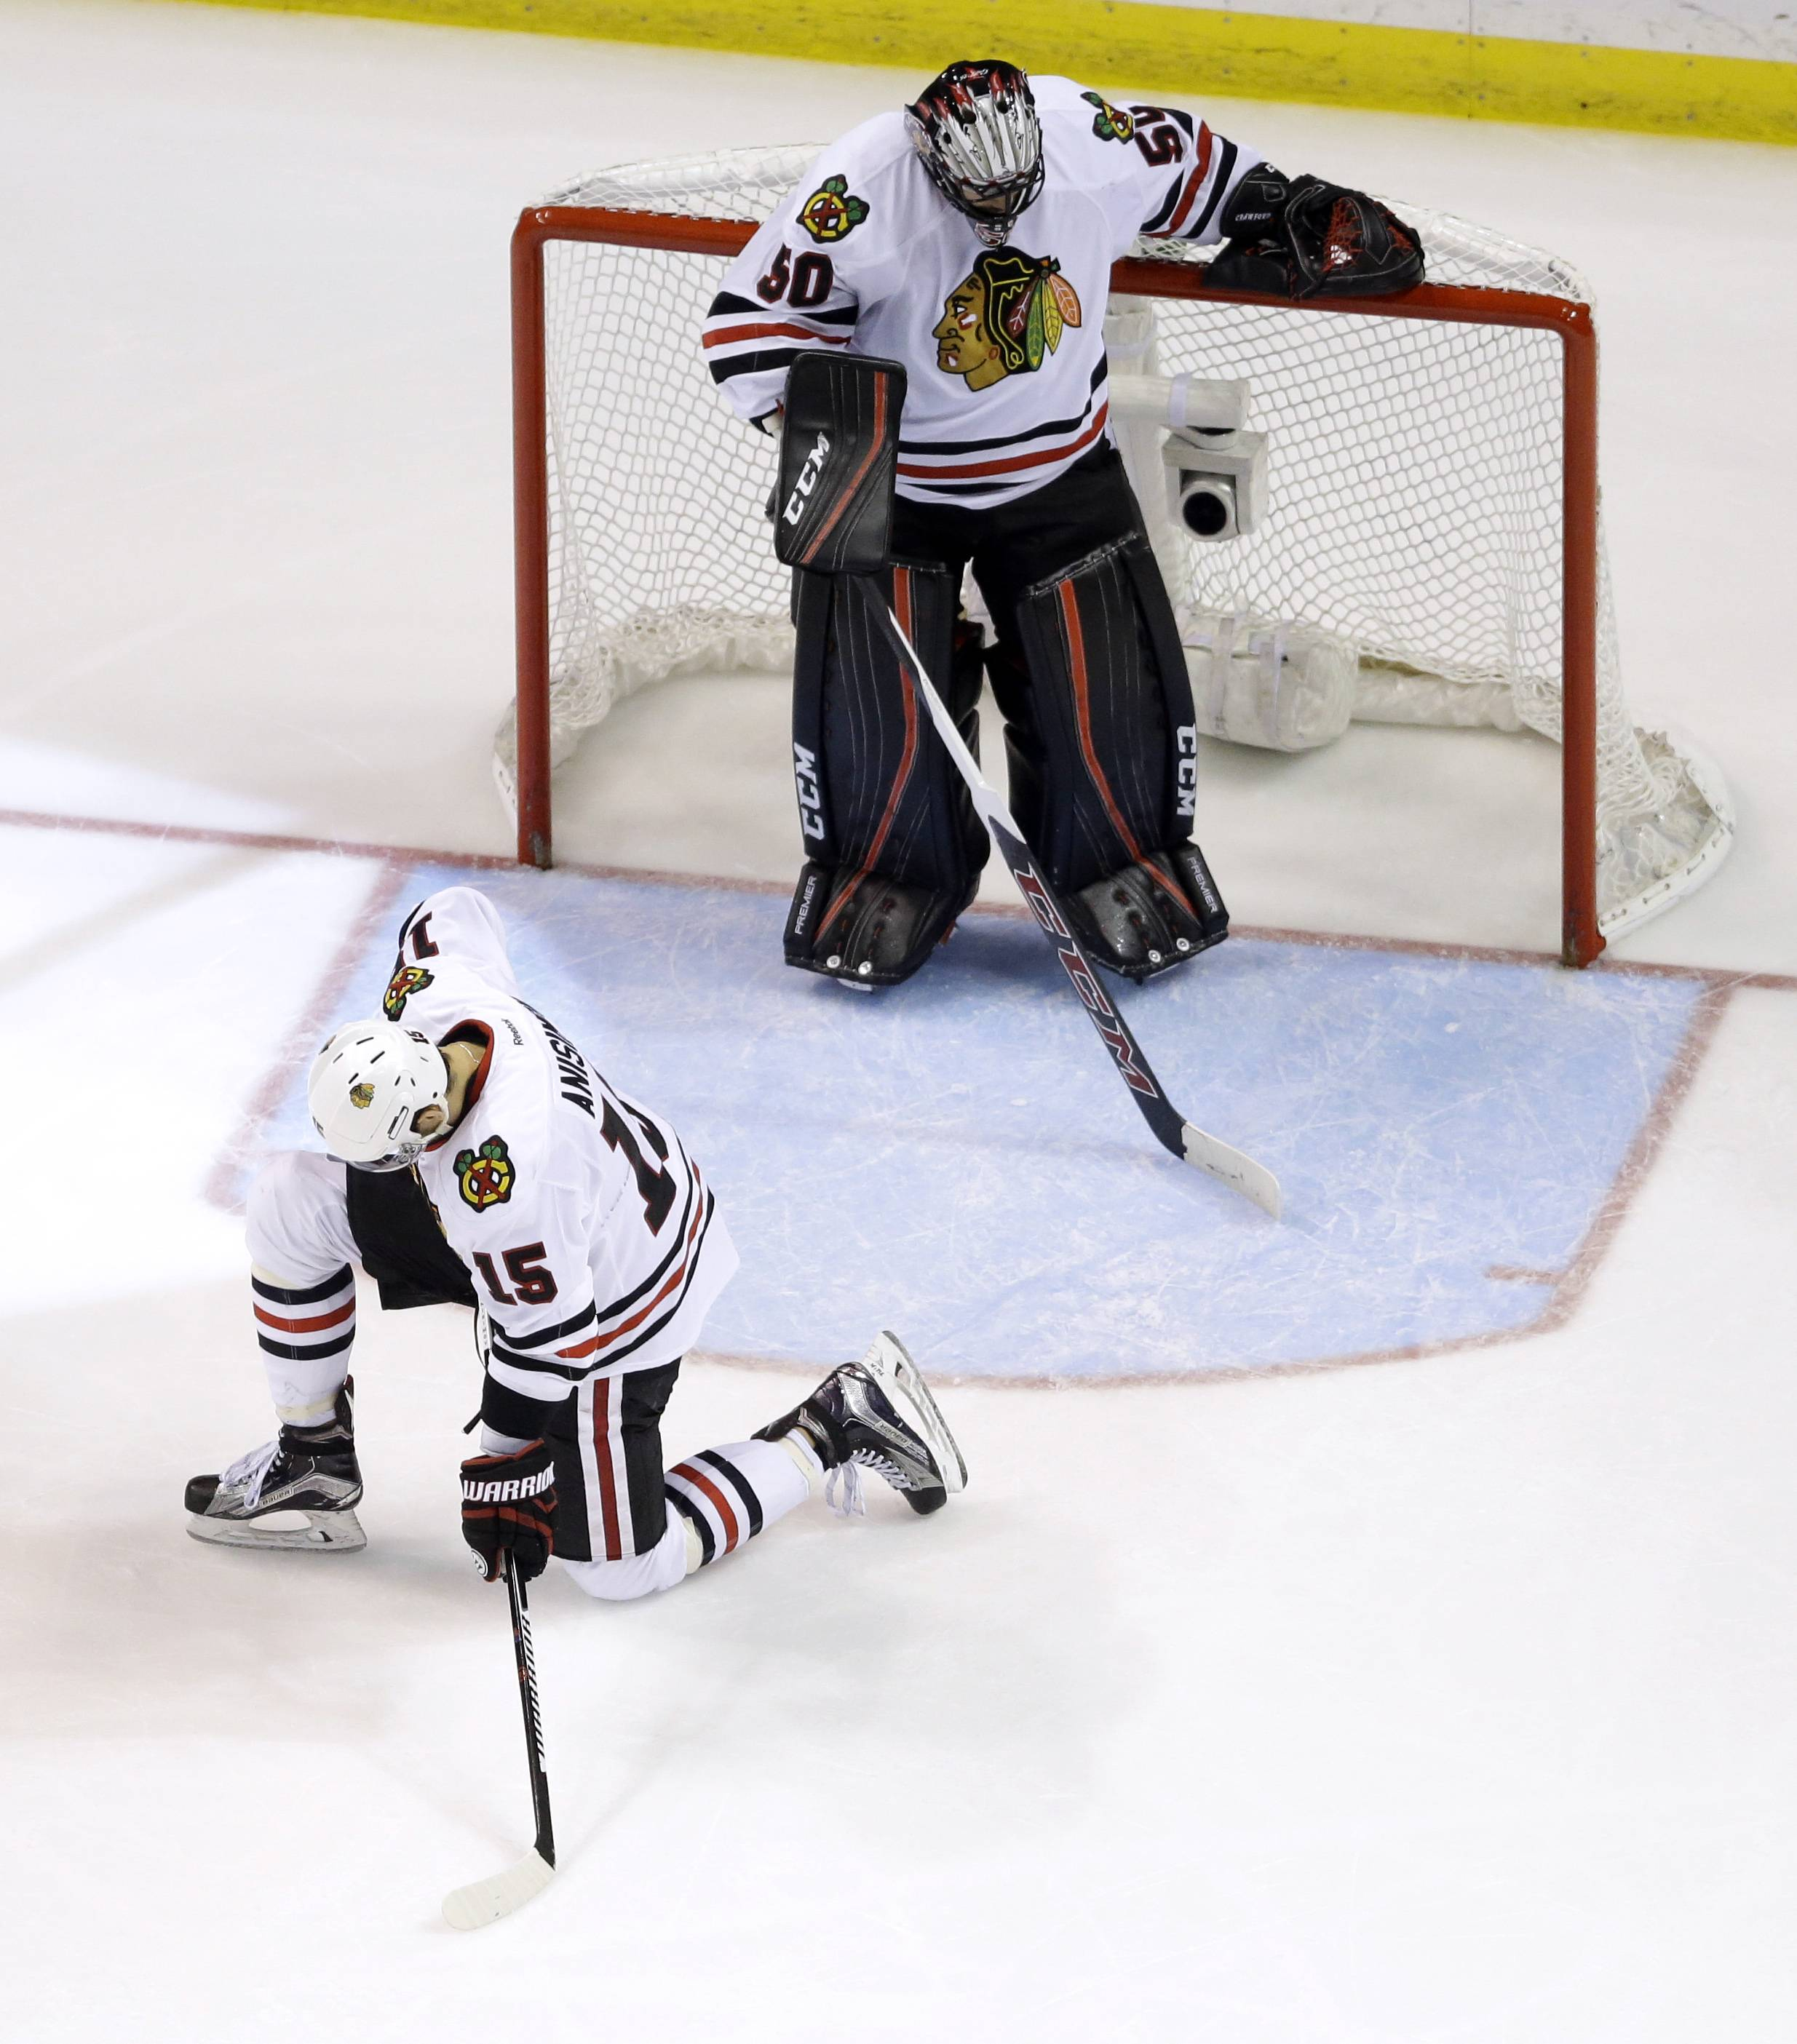 Chicago Blackhawks goalie Corey Crawford, top, and teammate Artem Anisimov, of Russia, pause after allowing a goal by St. Louis Blues' Troy Brouwer during the third period in Game 7 of an NHL hockey first-round Stanley Cup playoff series Monday, April 25, 2016, in St. Louis. The Blues won 4-3 to take the series 4-3.